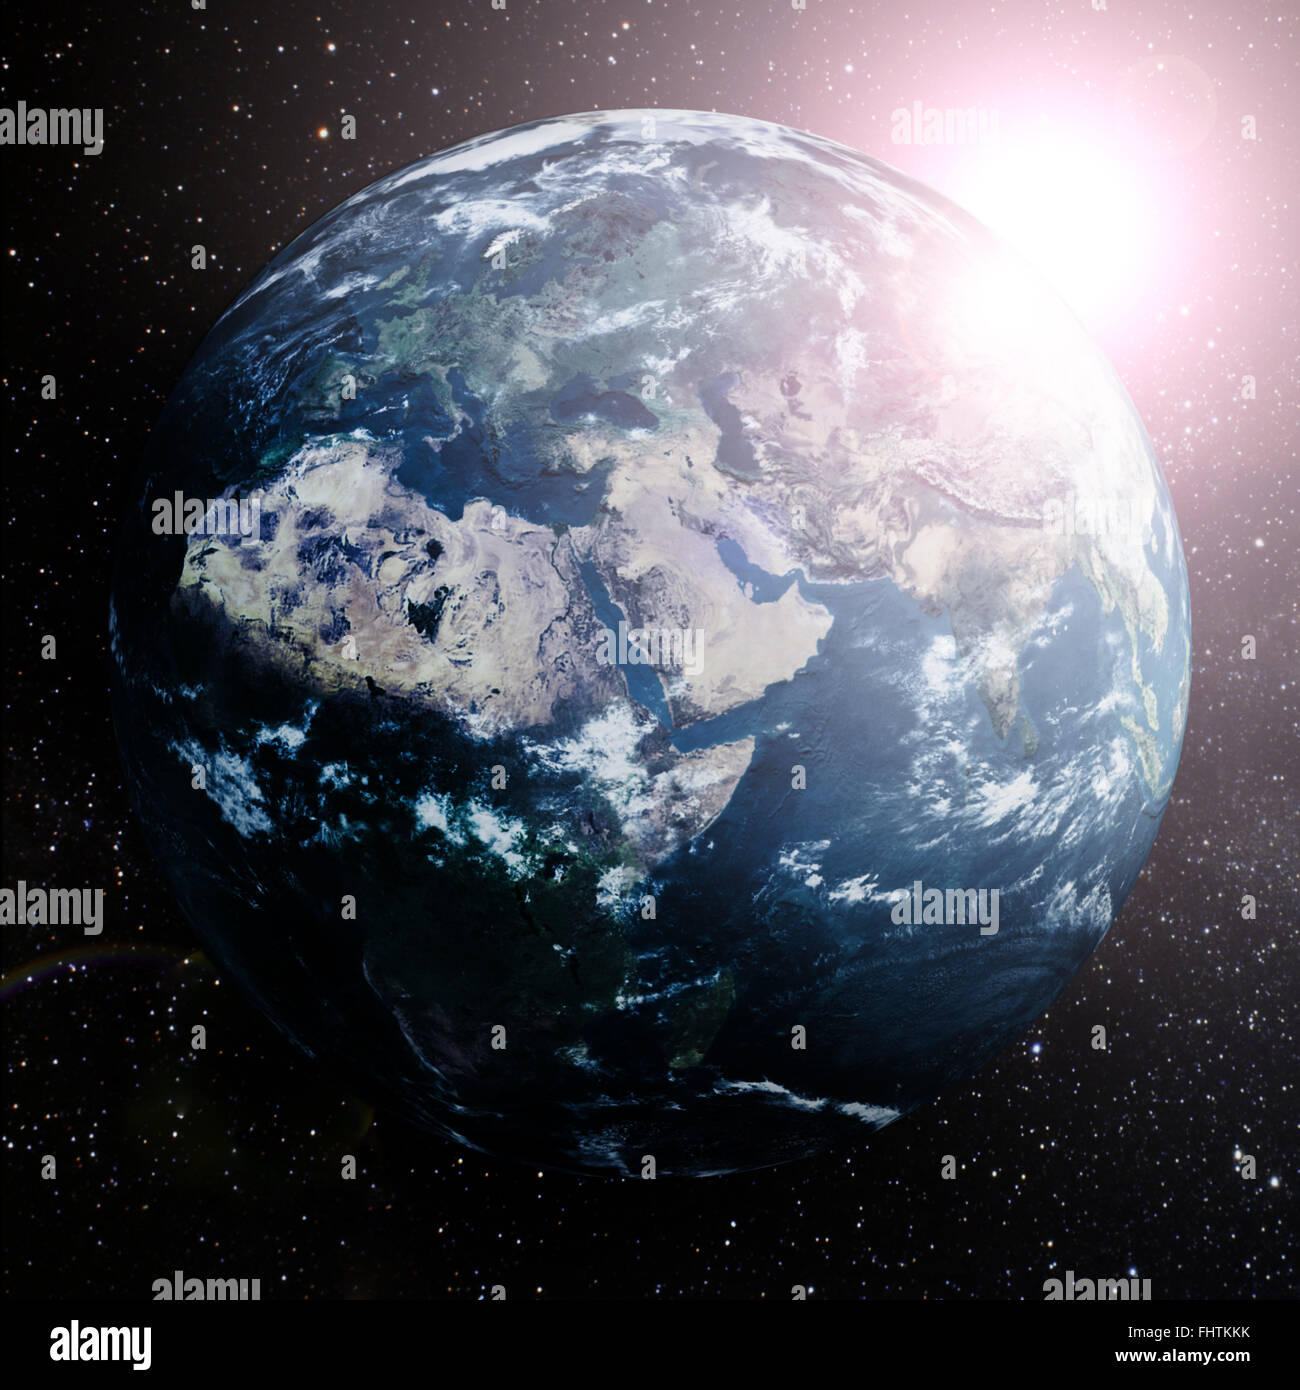 Earth in space showing Europe,Asia and Africa. - Stock Image